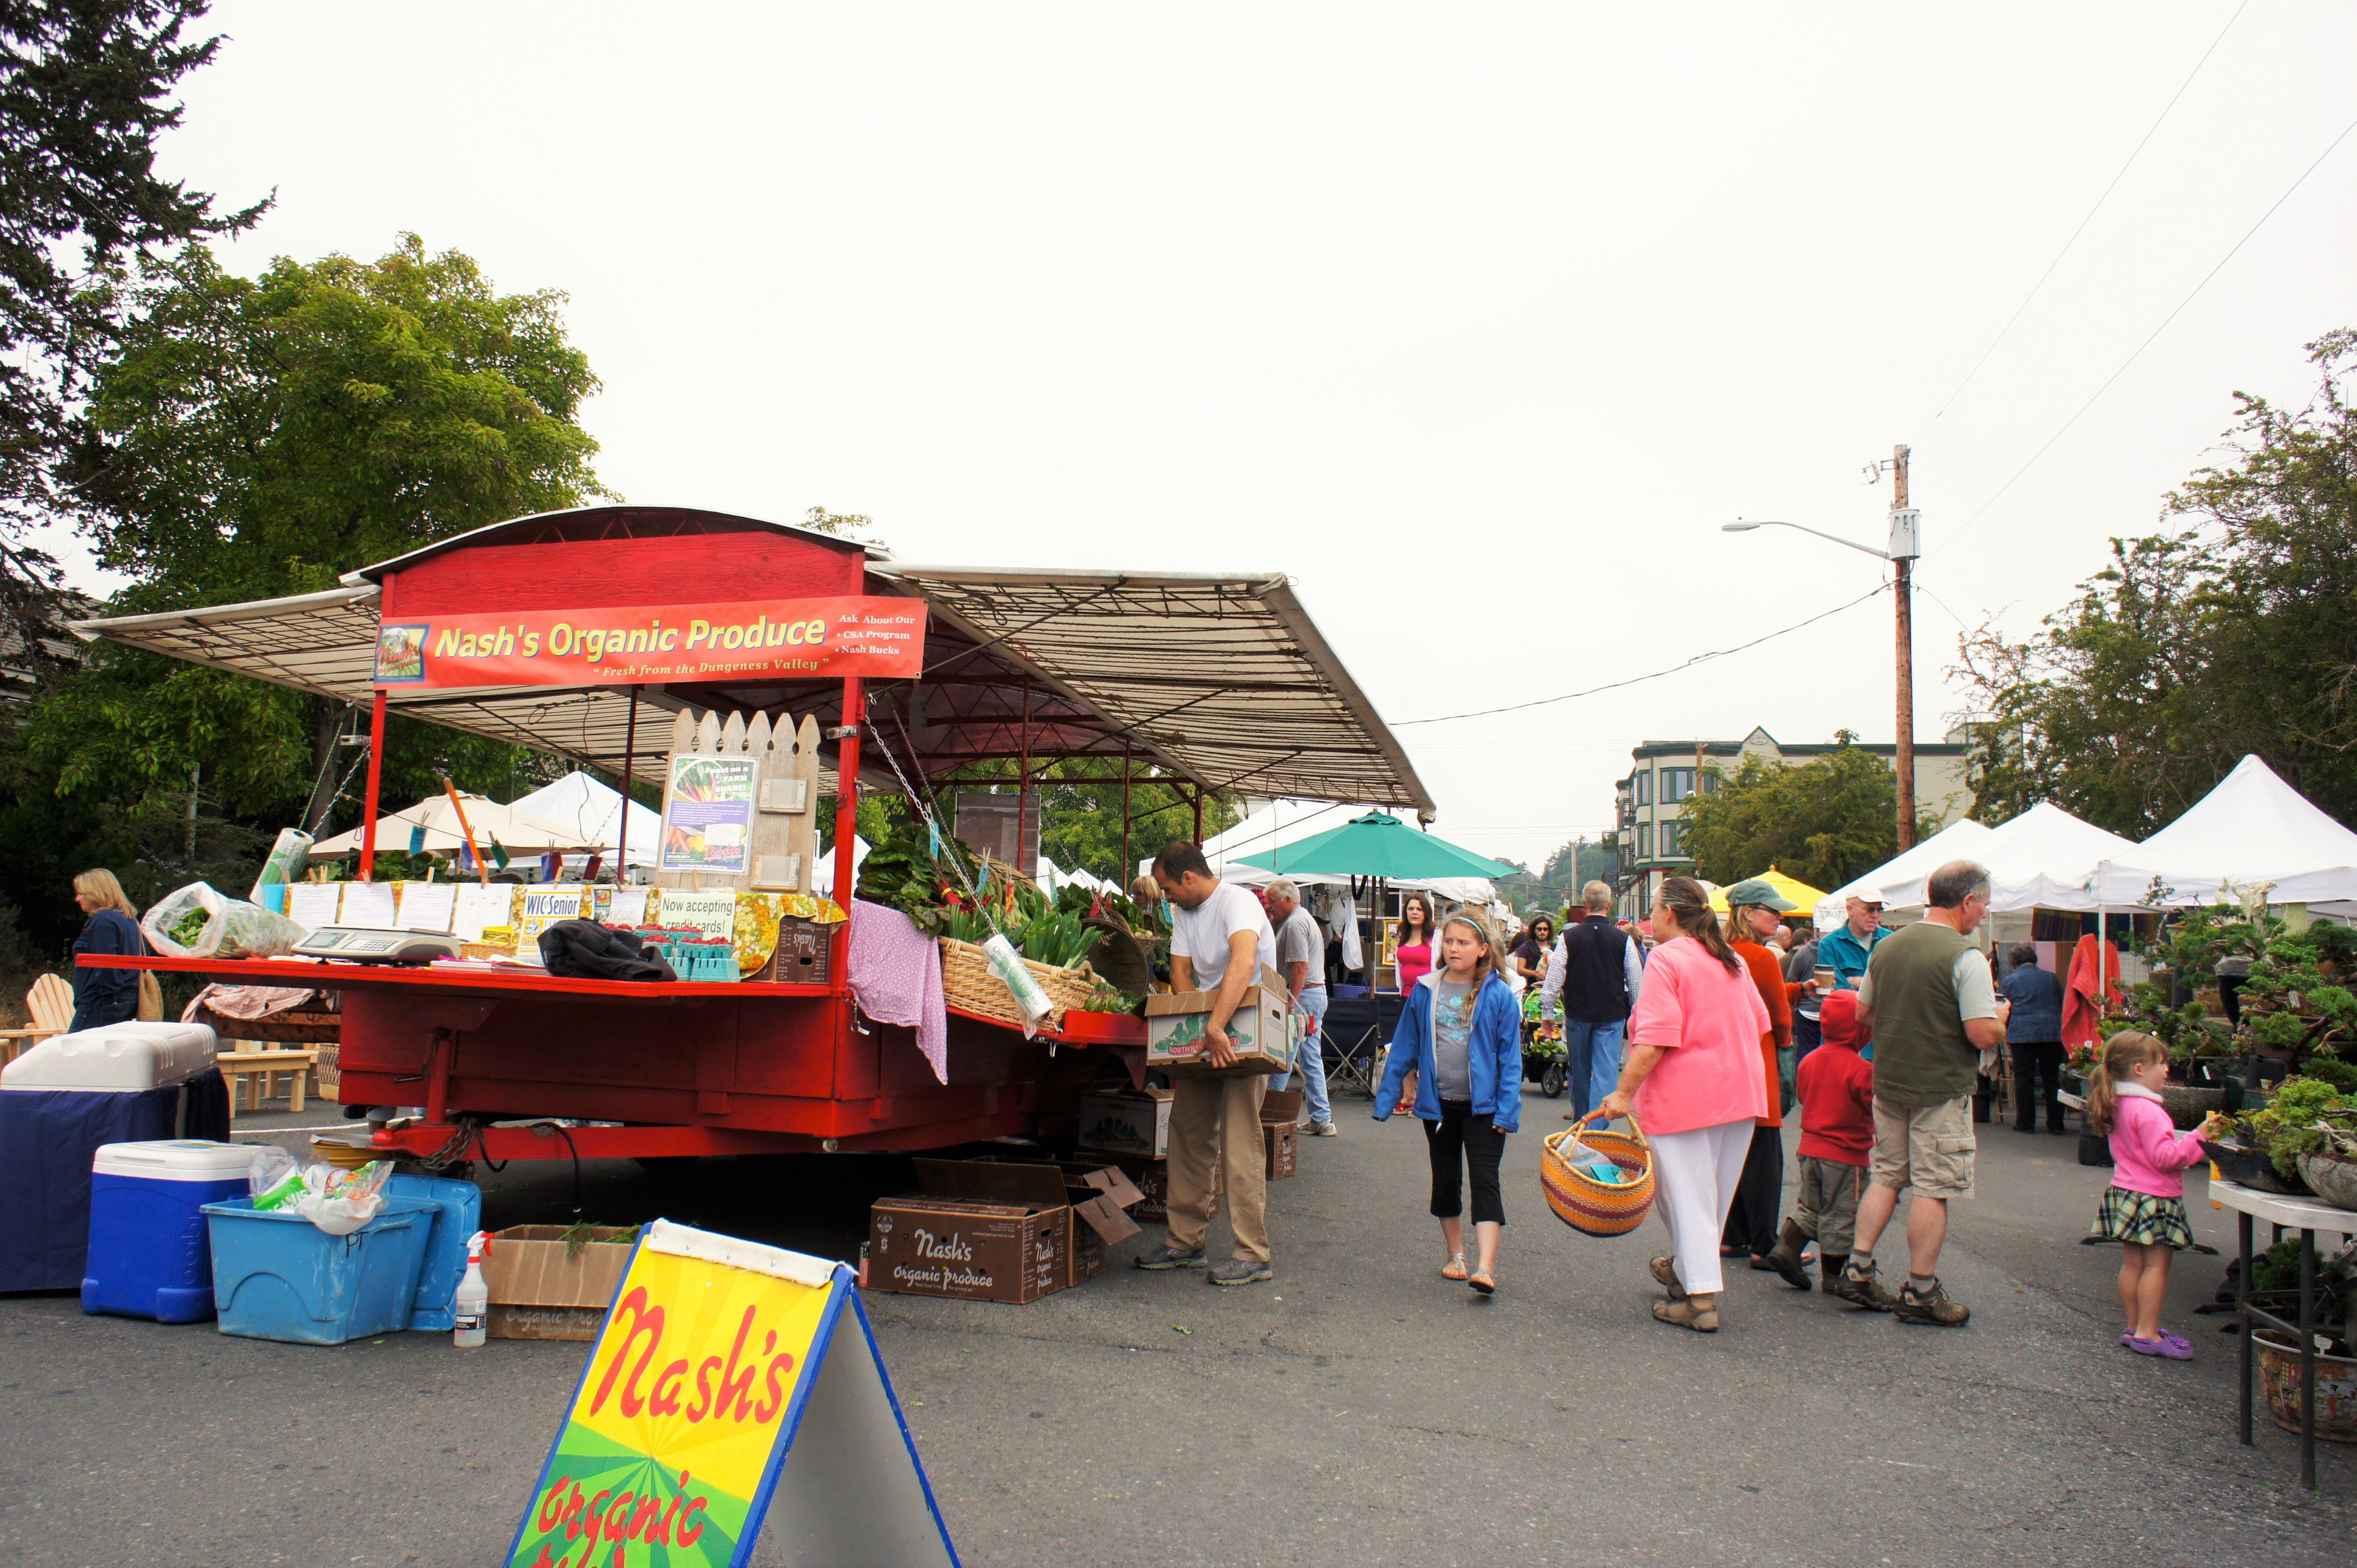 Port Townsend Farmers Market, photo by Ame Rainey via Flickr Creative Commons